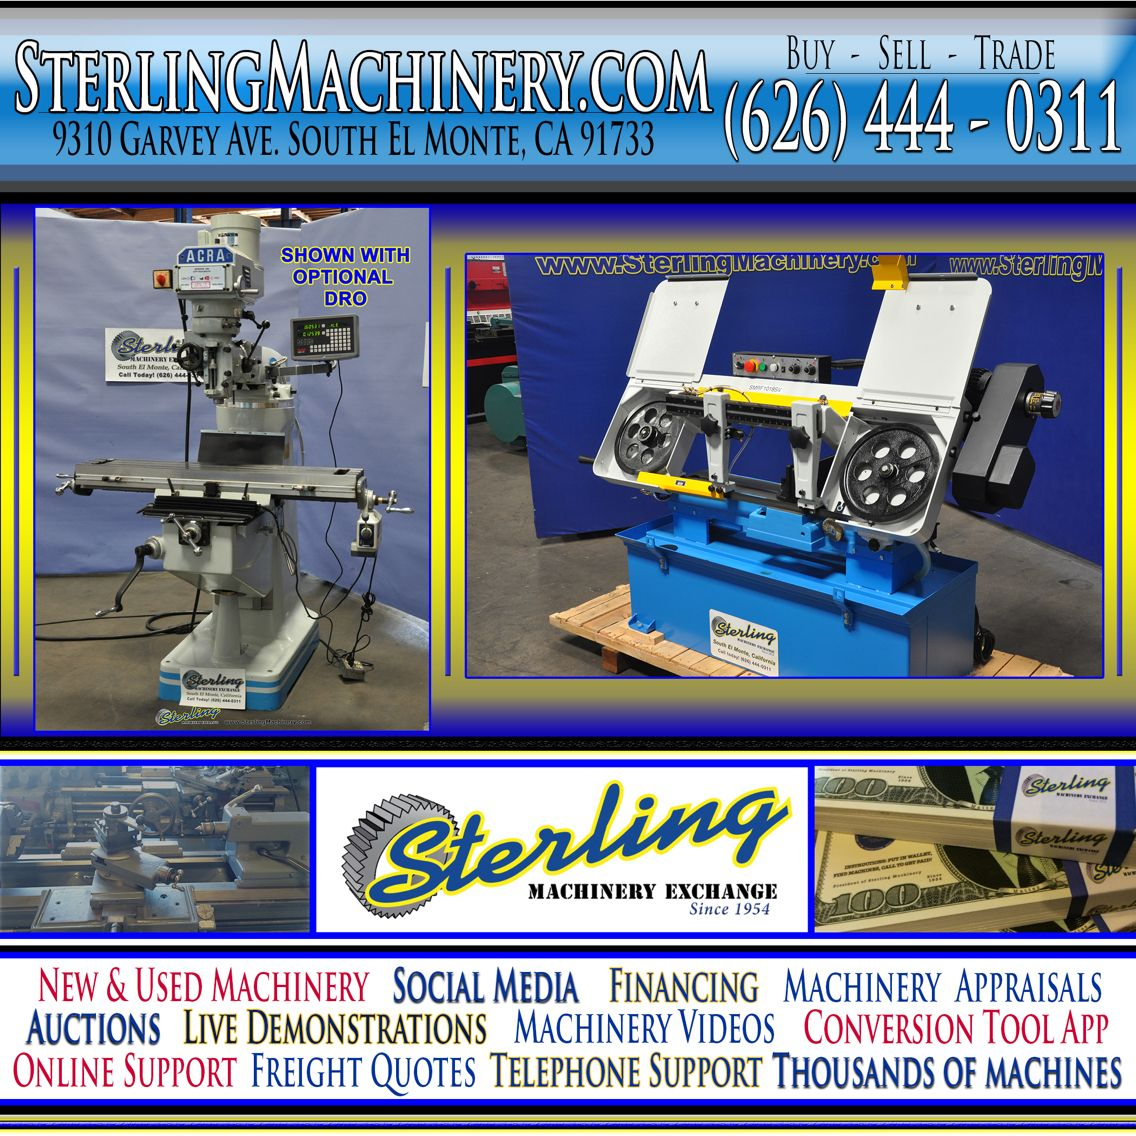 Buy. Sell. Trade. Industrial Metalworking Machinery